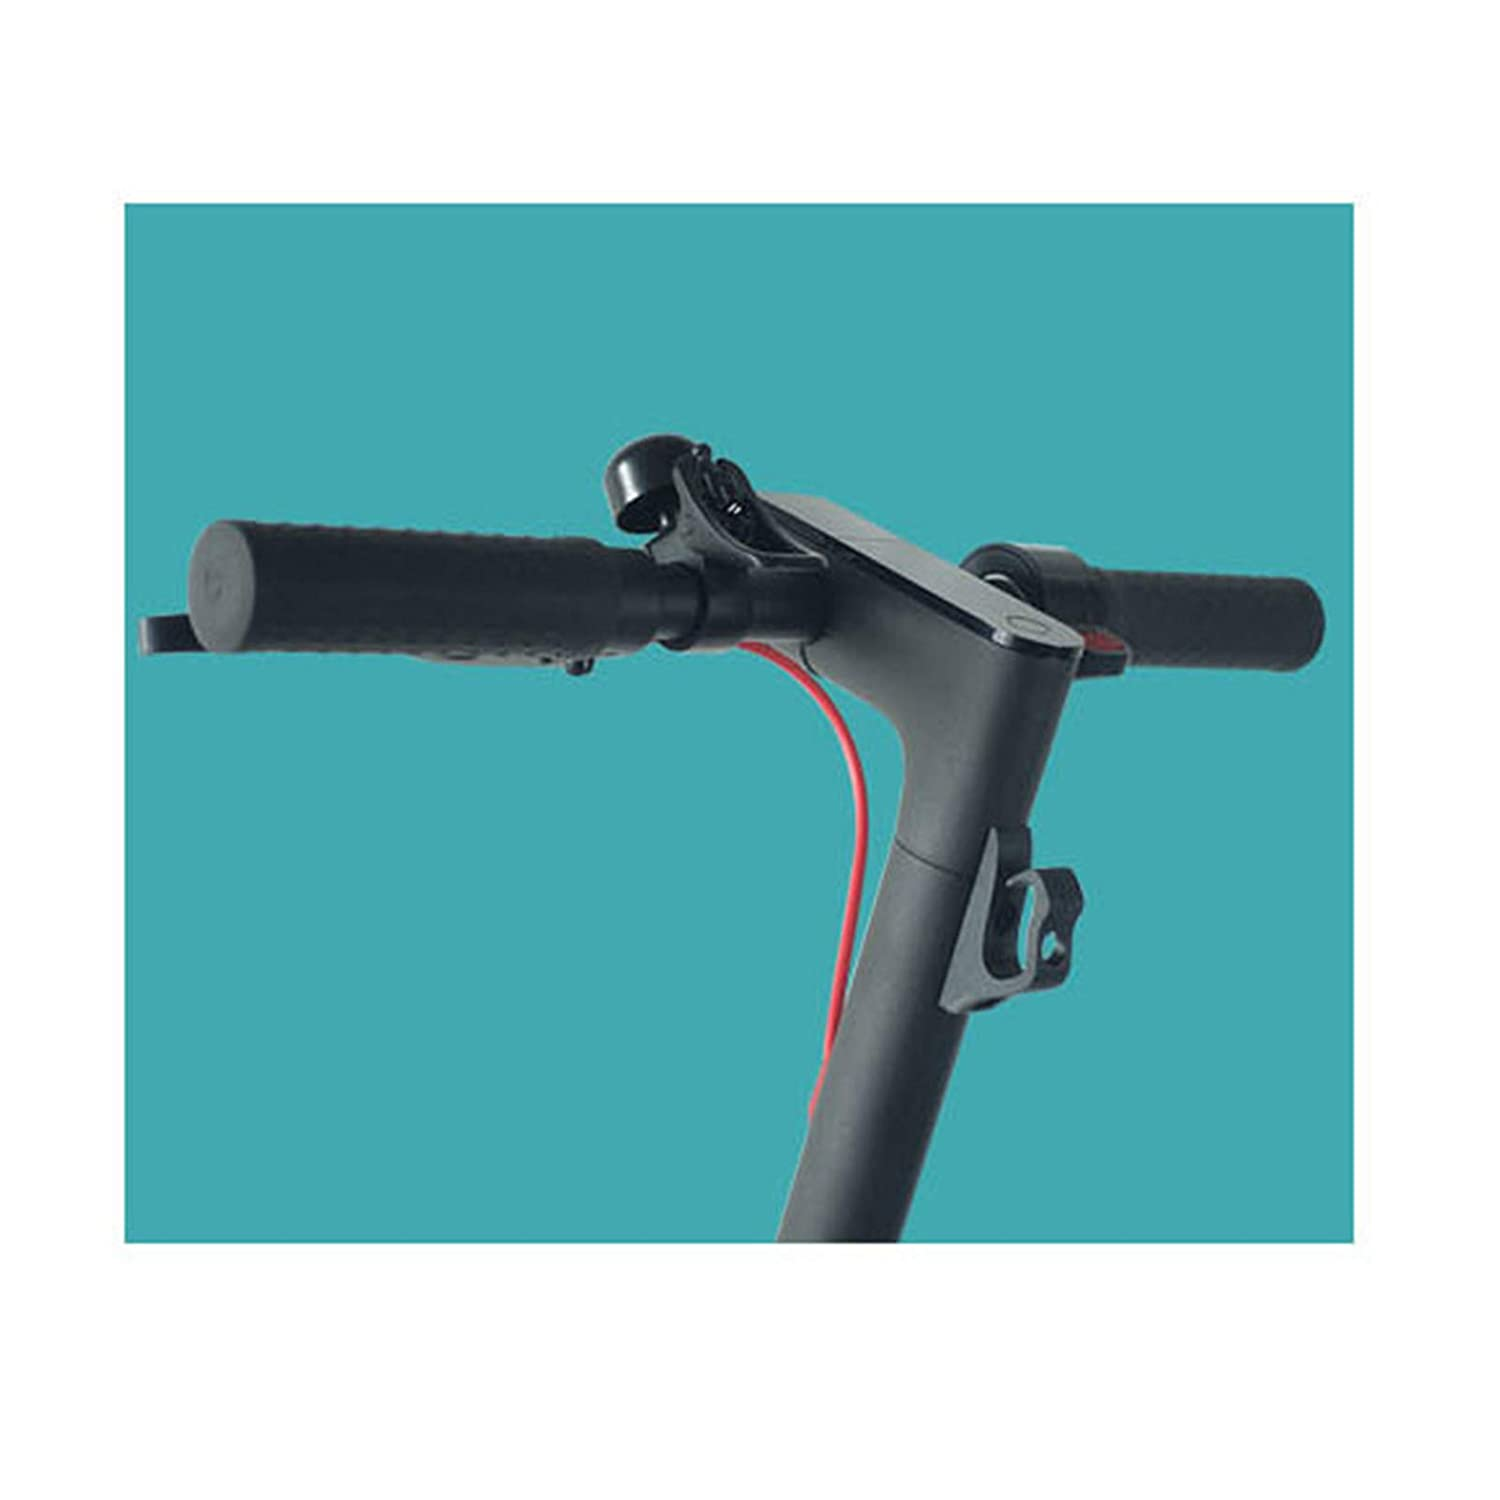 M365 Pro LICHIFIT Multi-functional Hanger Gadget Bag Claw Front Hook for Xiaomi Mijia M365 M187 Electric Scooter